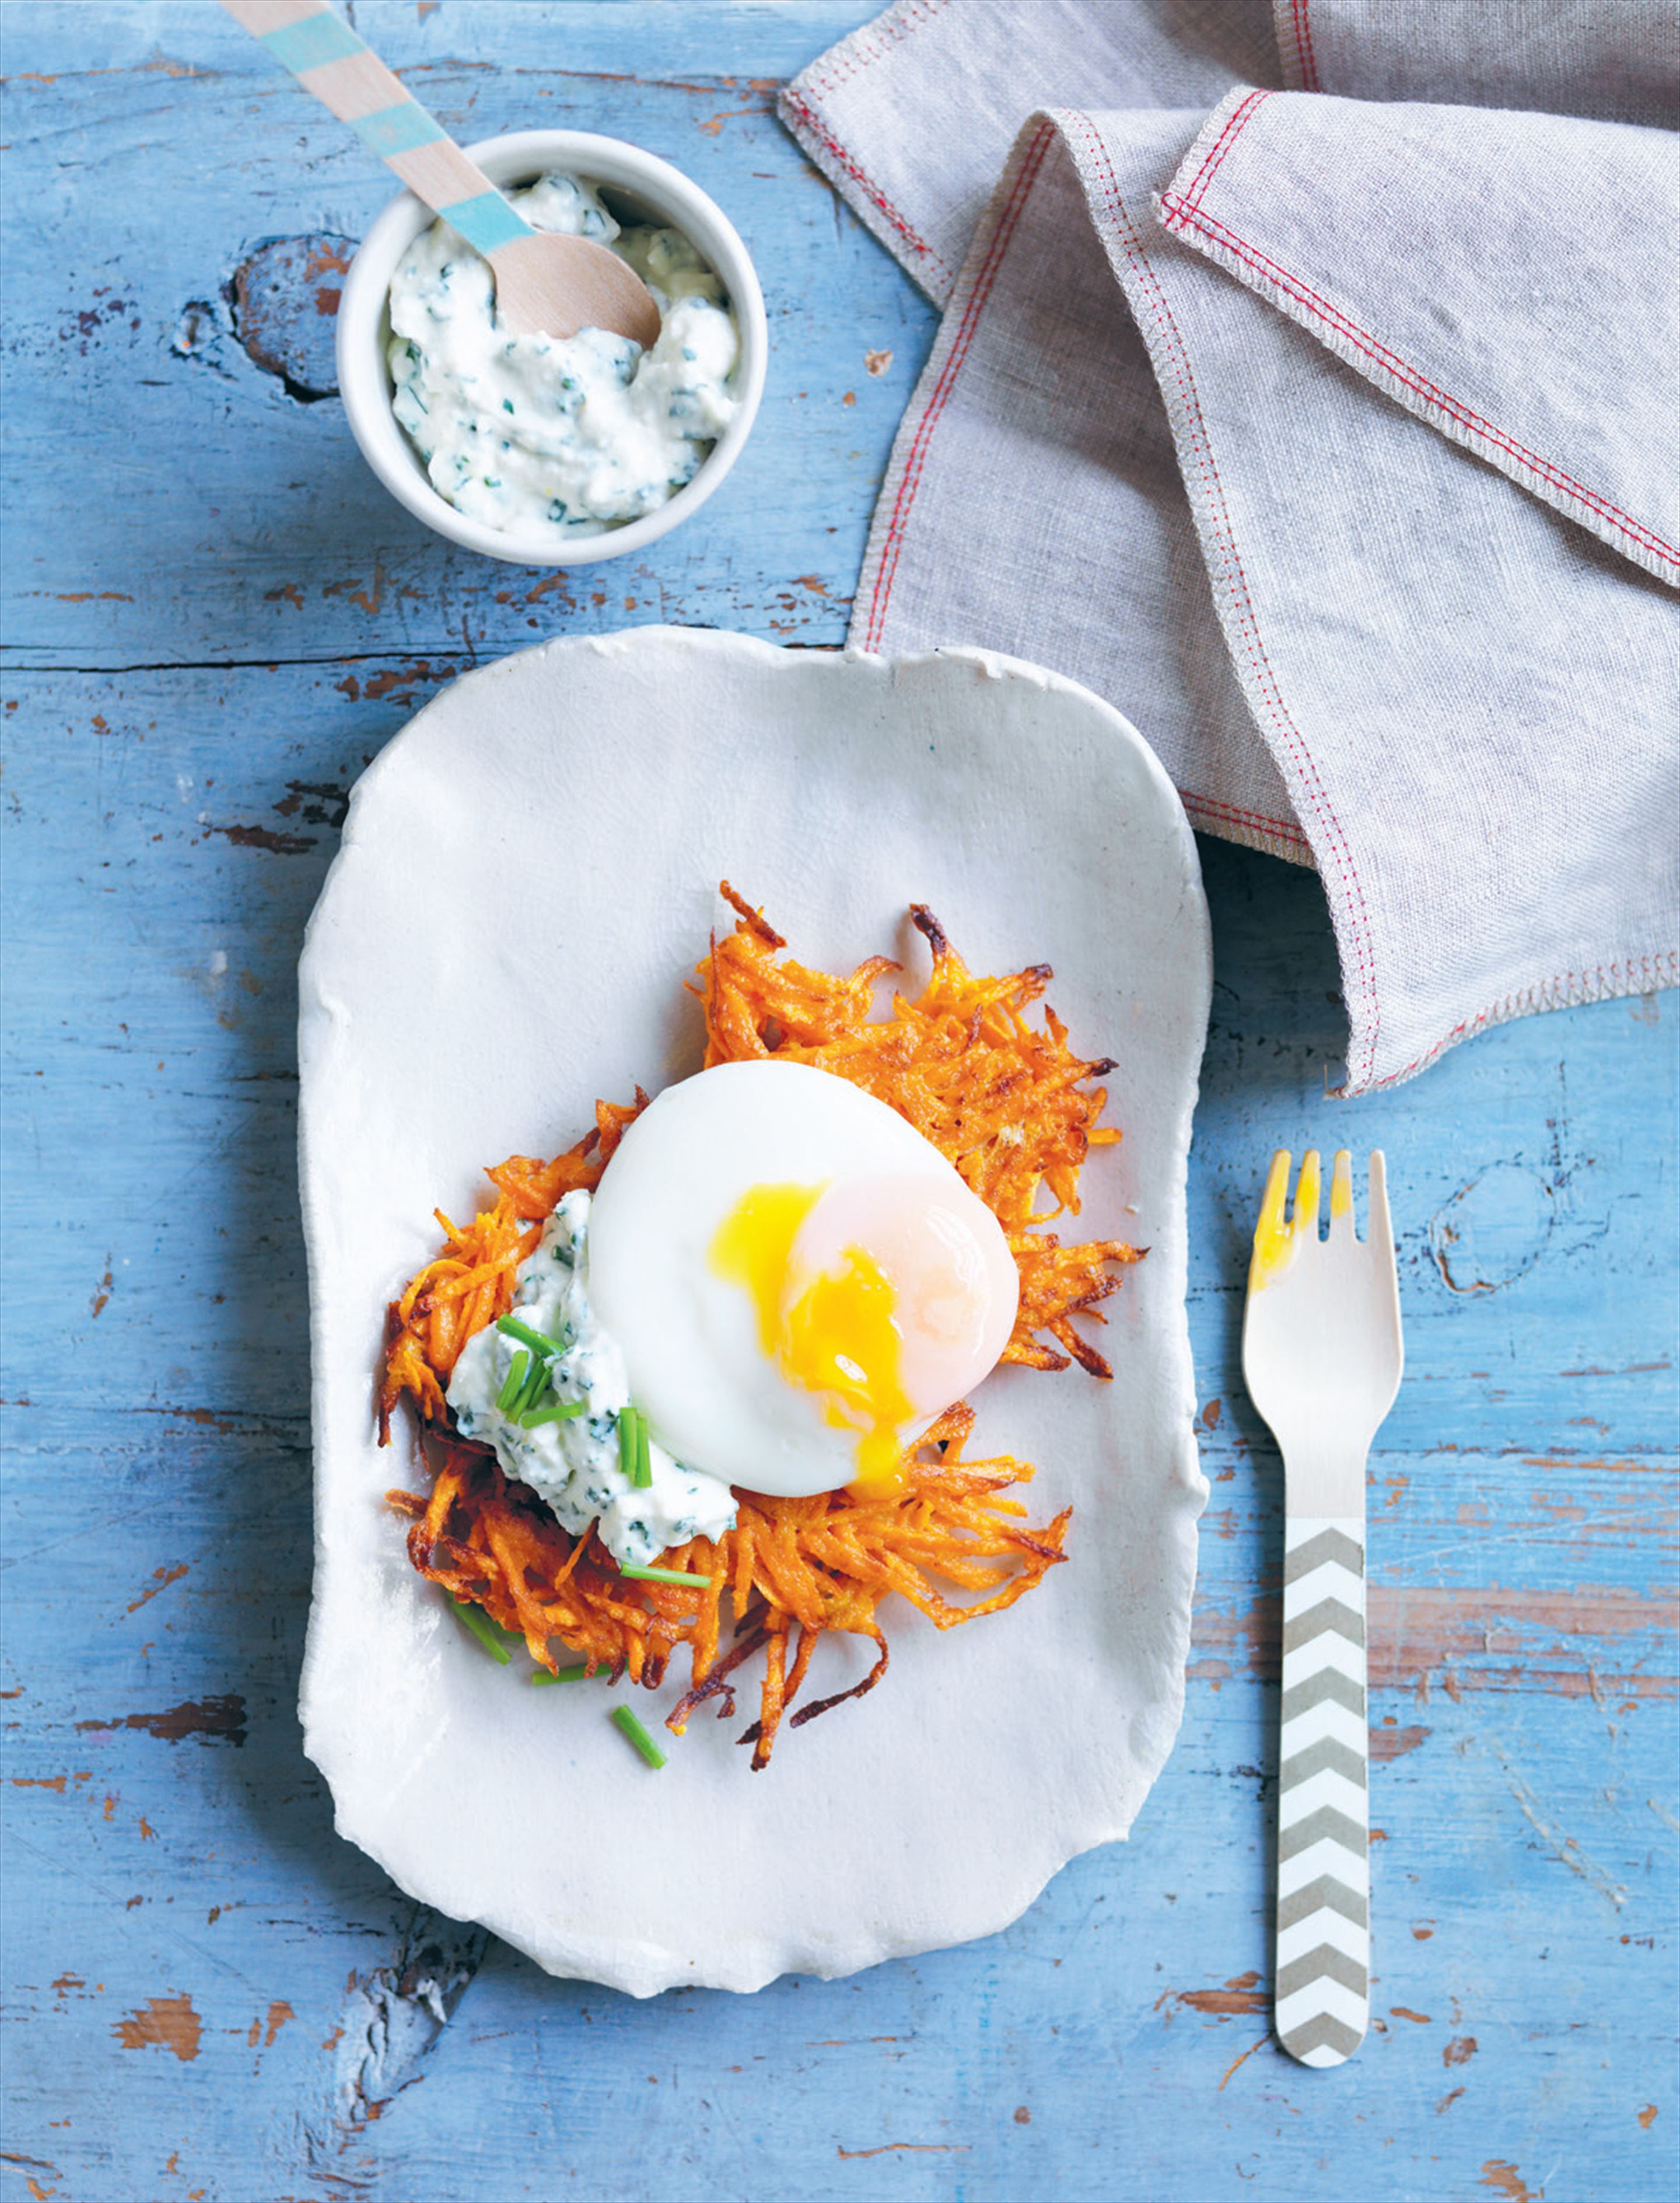 Sweet potato rösti with herbed ricotta and poached egg